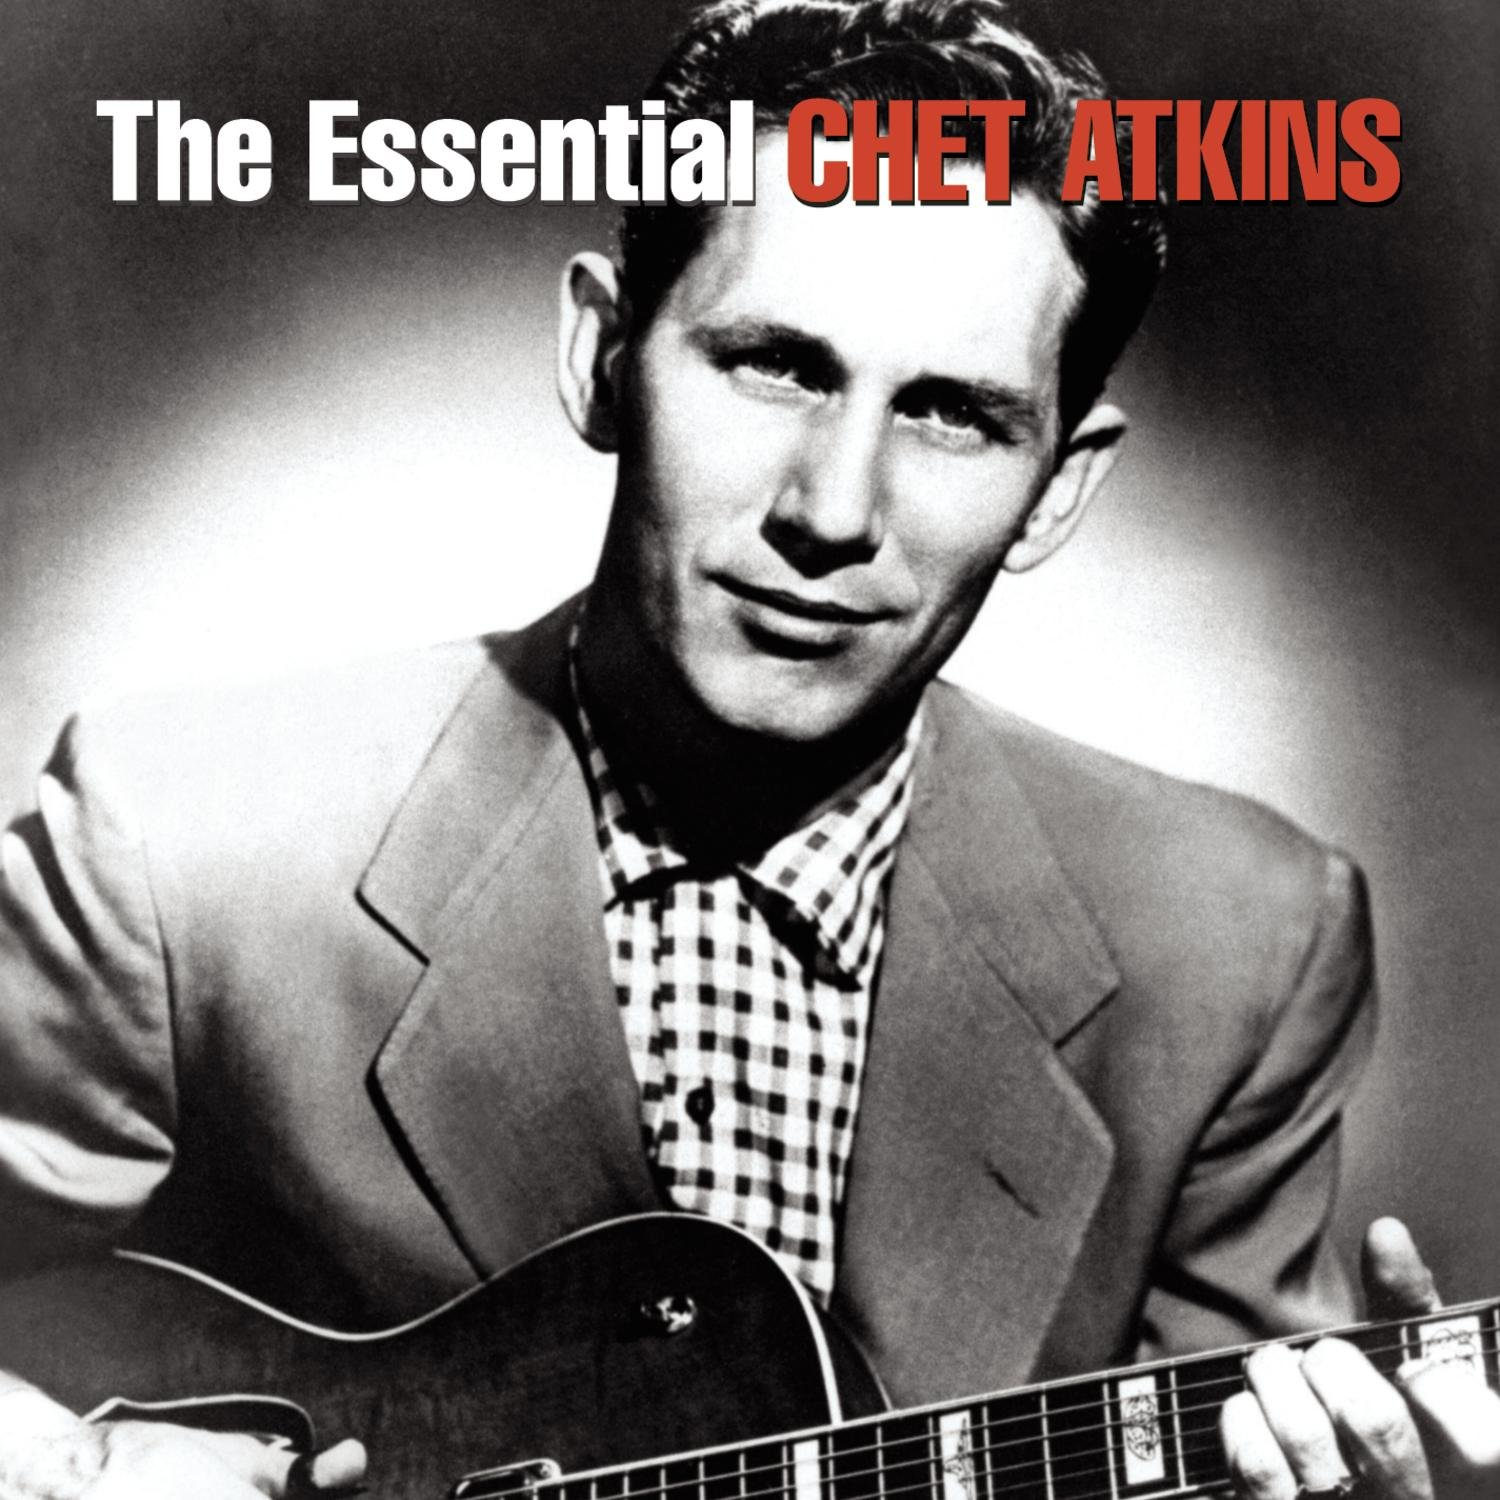 The Essential Chet Atkins by Legacy